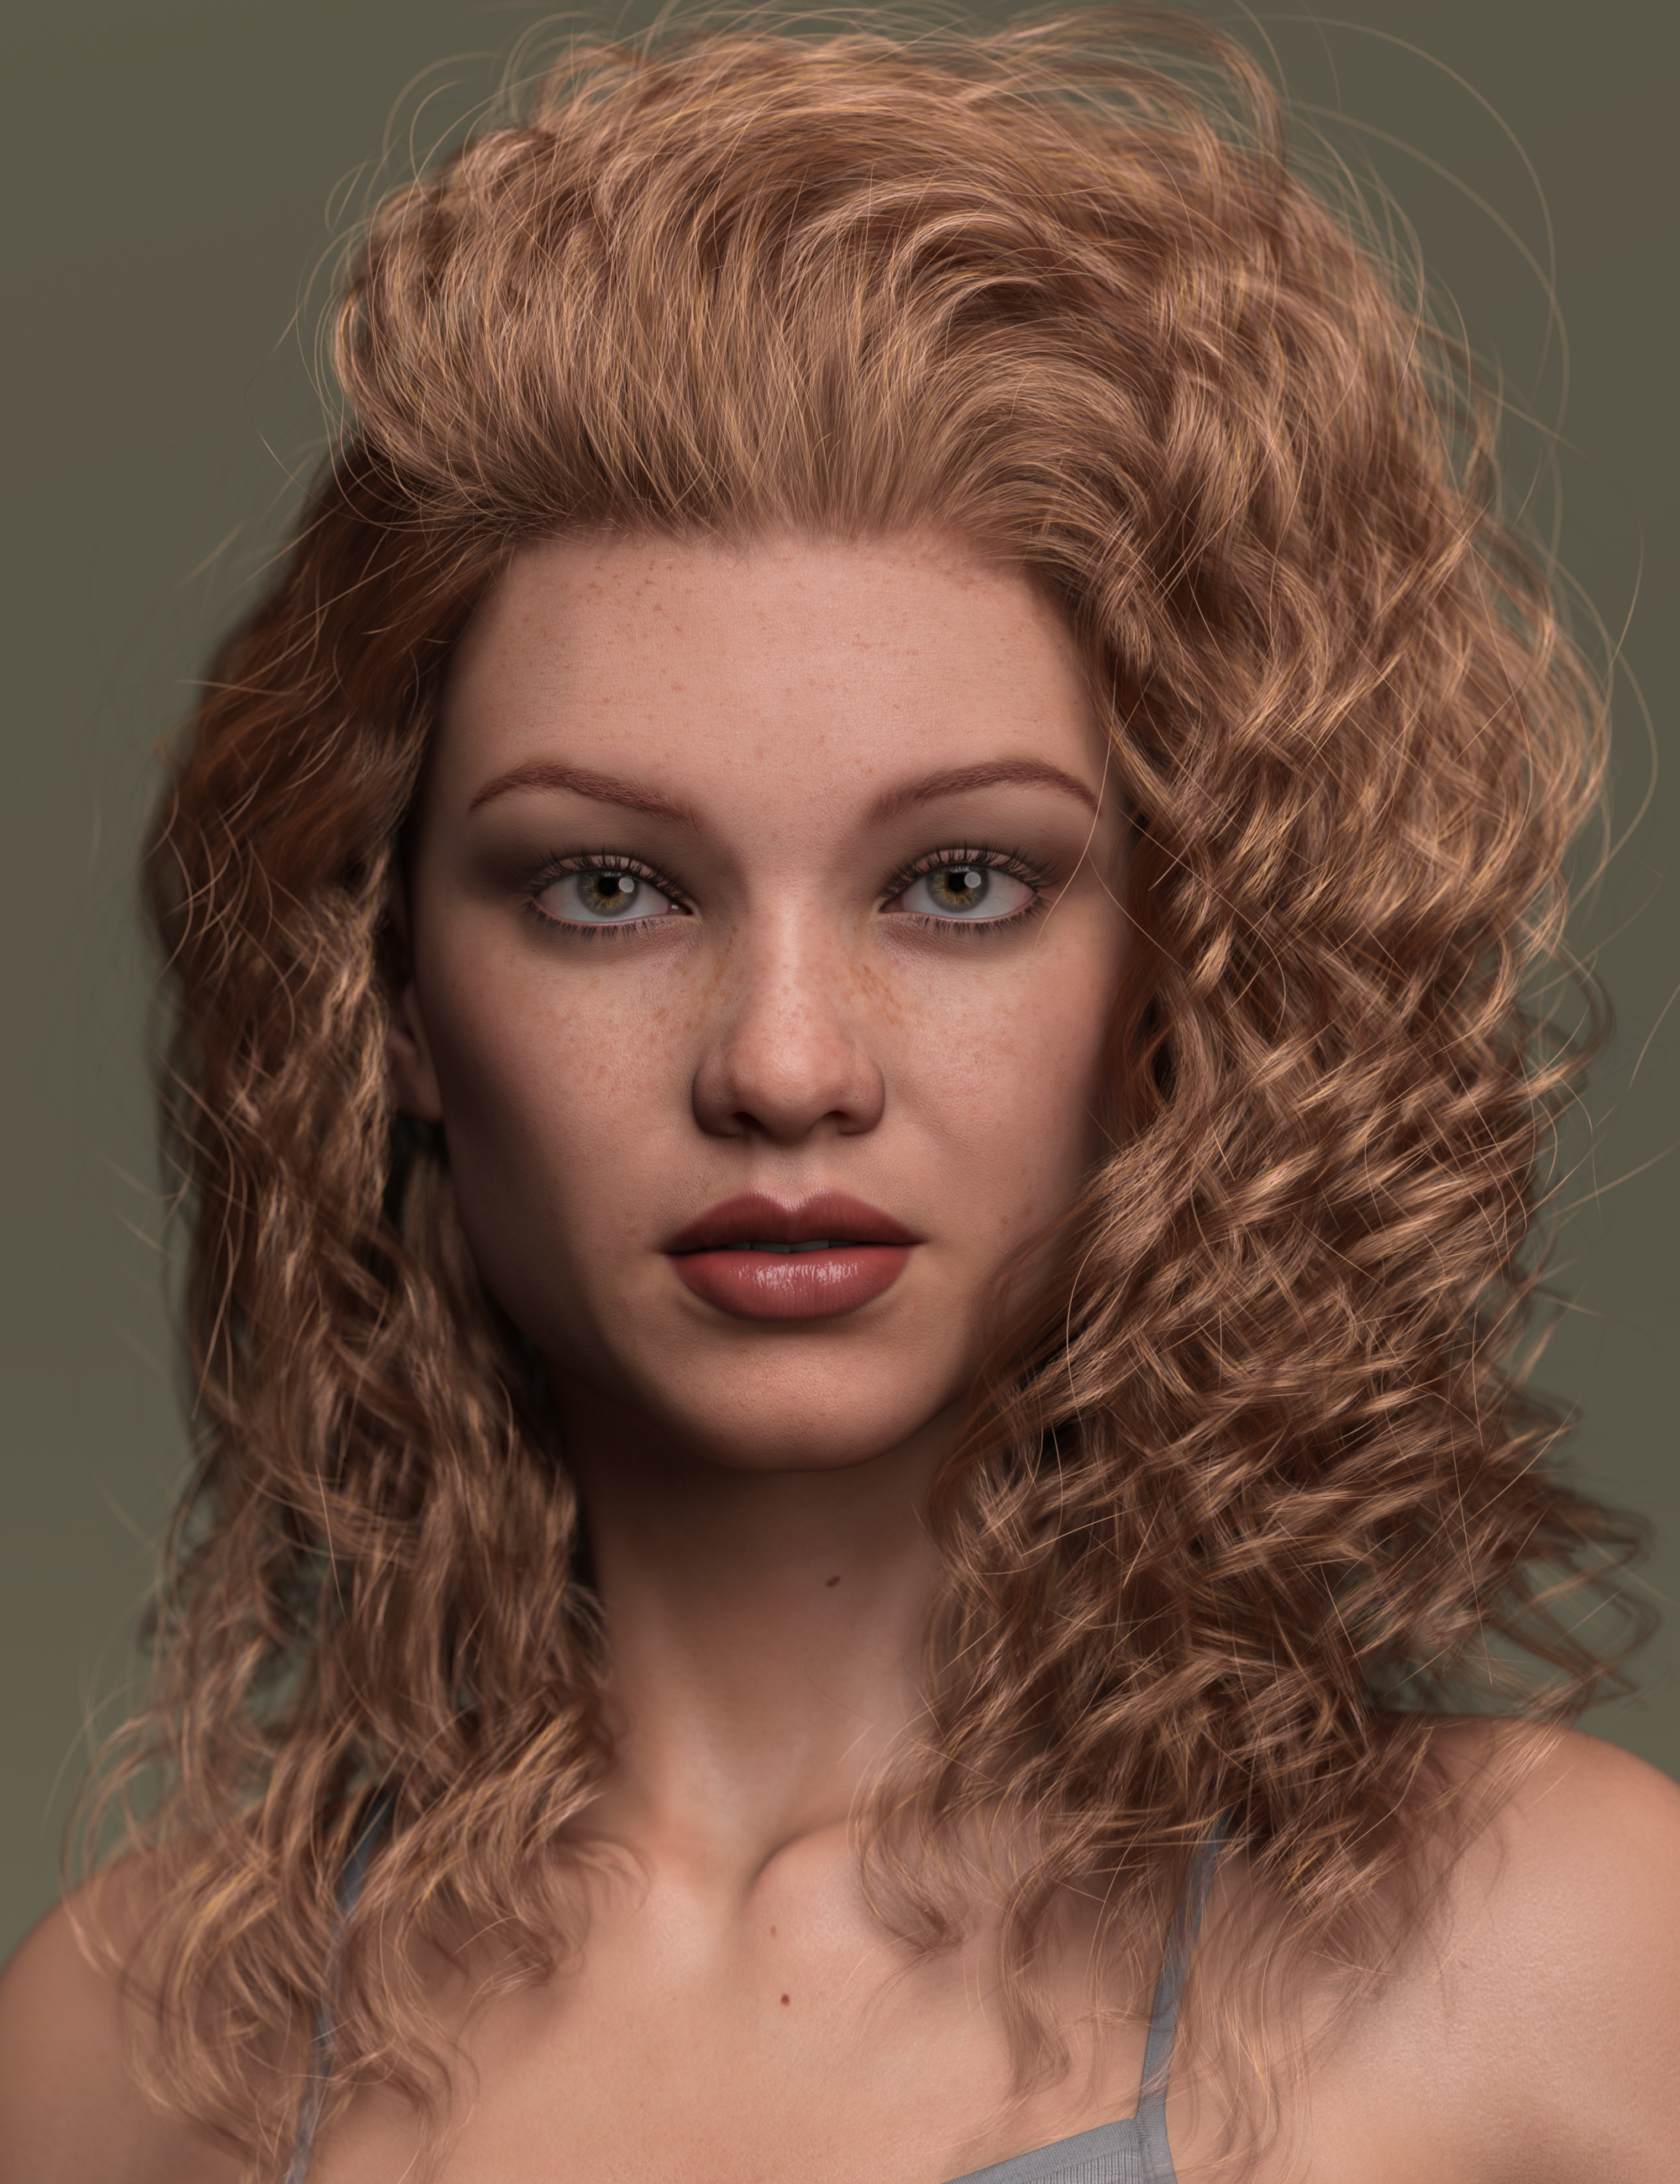 2021-06 Hair for Genesis 8 and 8.1 Females by: outoftouch, 3D Models by Daz 3D